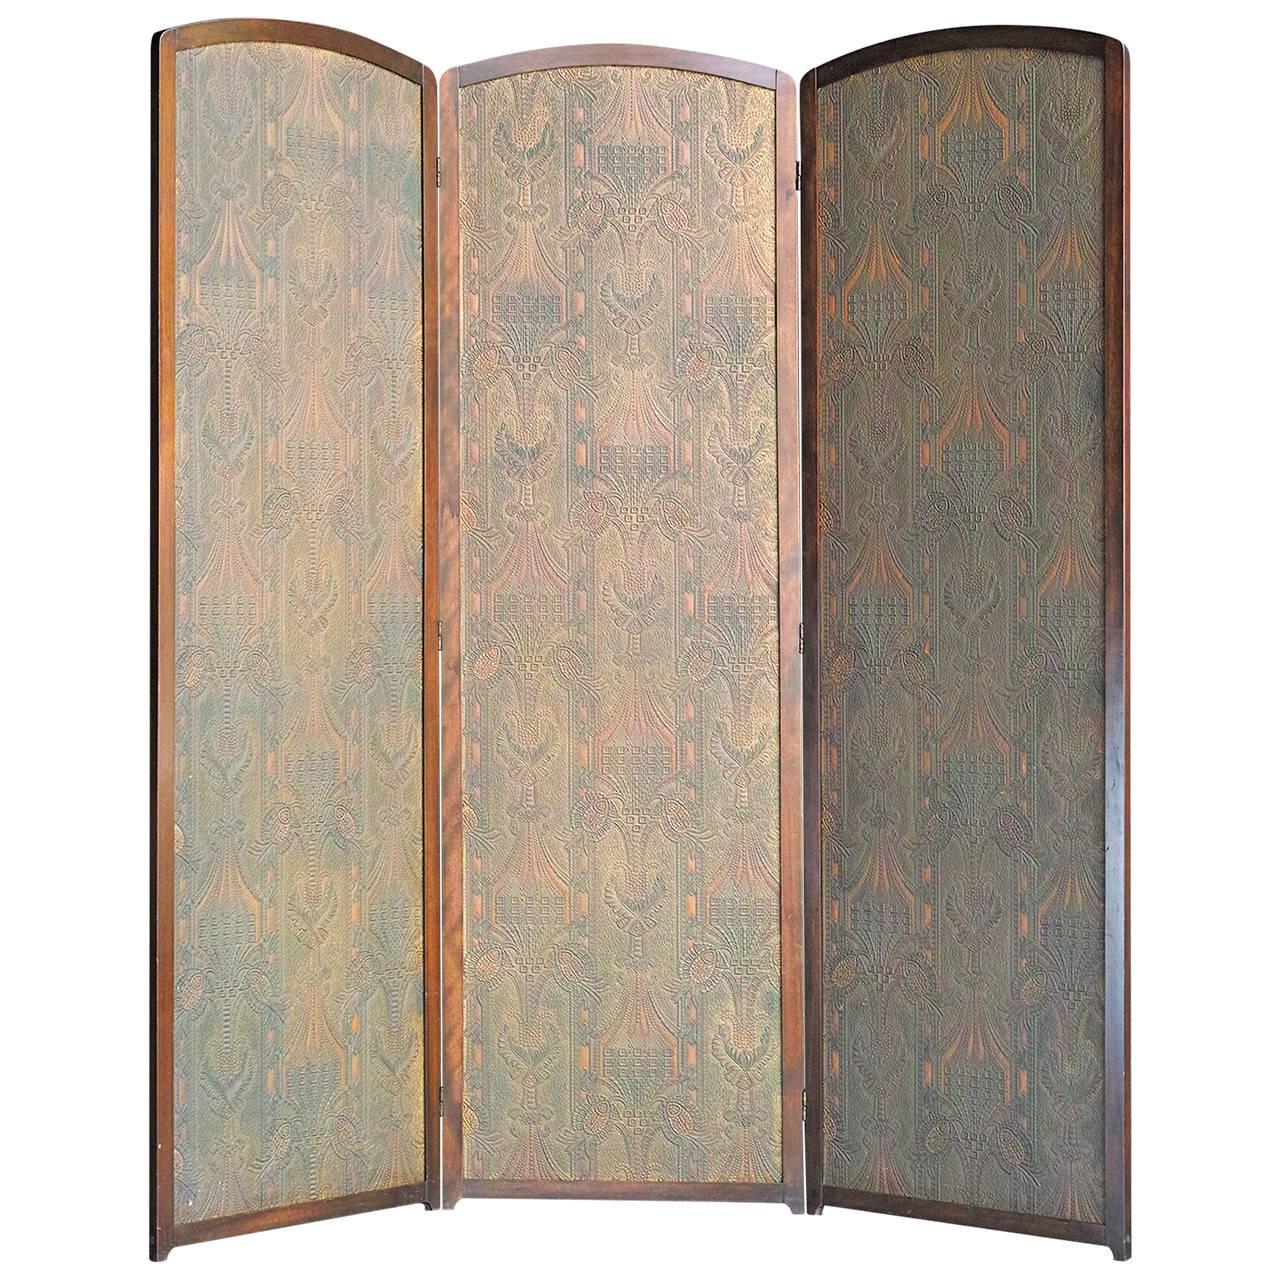 Three-Panel Folding Screen For Sale